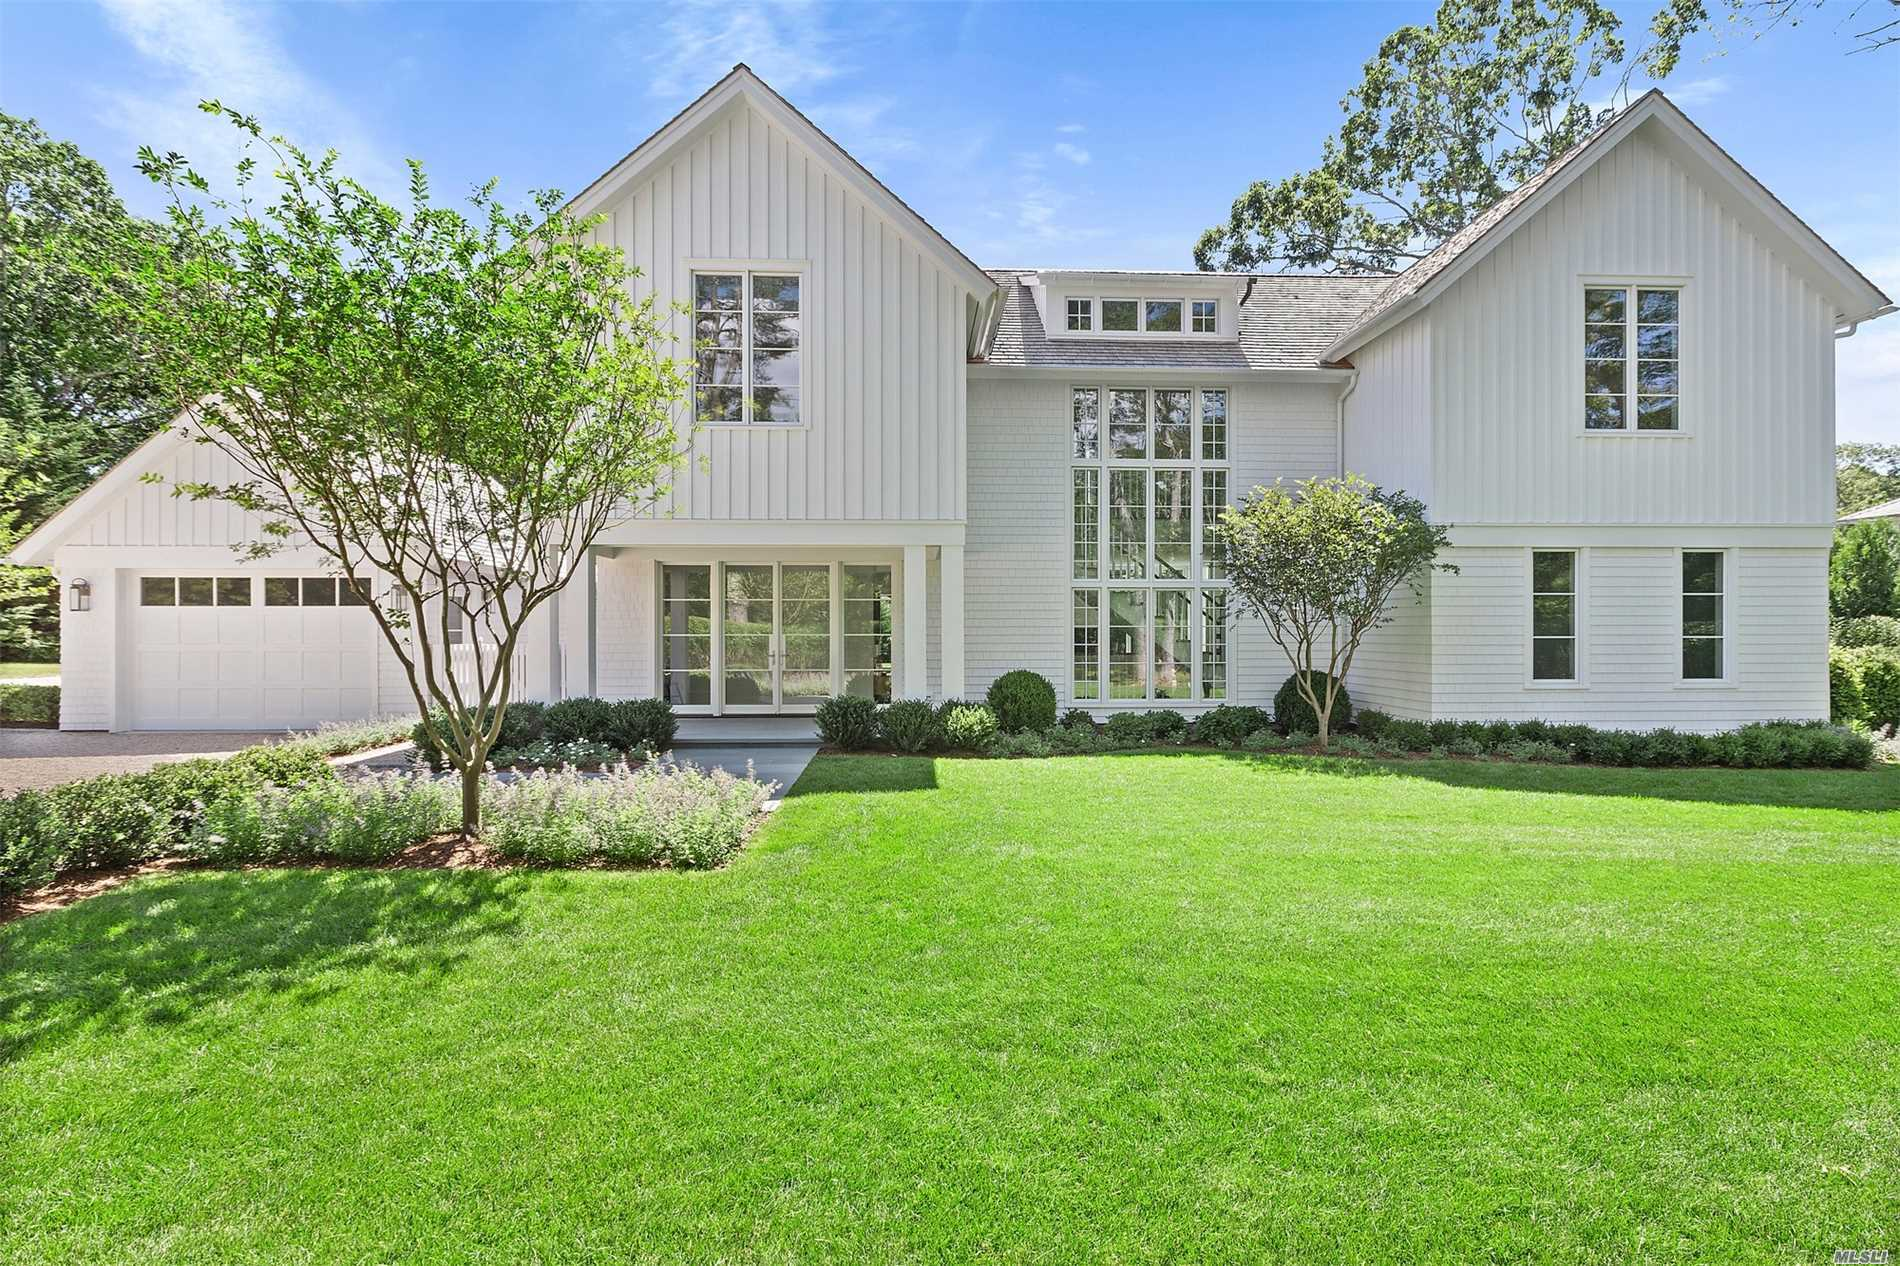 This stunning south-of-the highway, new construction, is nestled in the Georgica section of East Hampton Village. A collaboration of MAP Development and Fred Smith Architects, this exquisite home spans 4, 300 +/- square feet on three levels, boasting six bedrooms and seven and one-half baths. On the first floor, the large open, custom Henry Built kitchen, features only the highest quality stainless steel appliances.